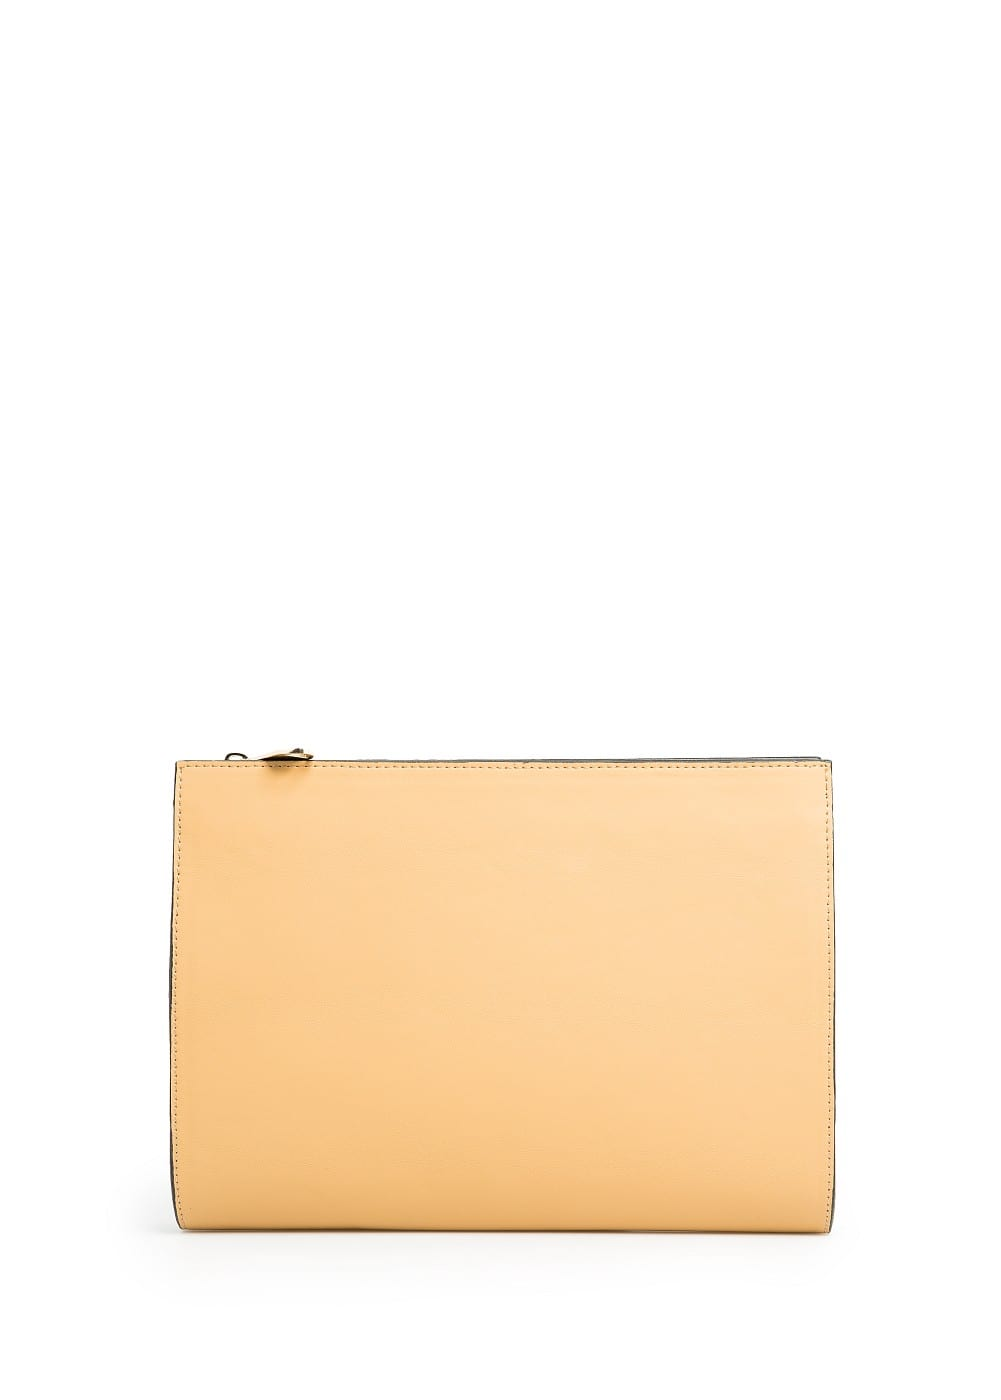 LEATHER EFFECT CLUTCH